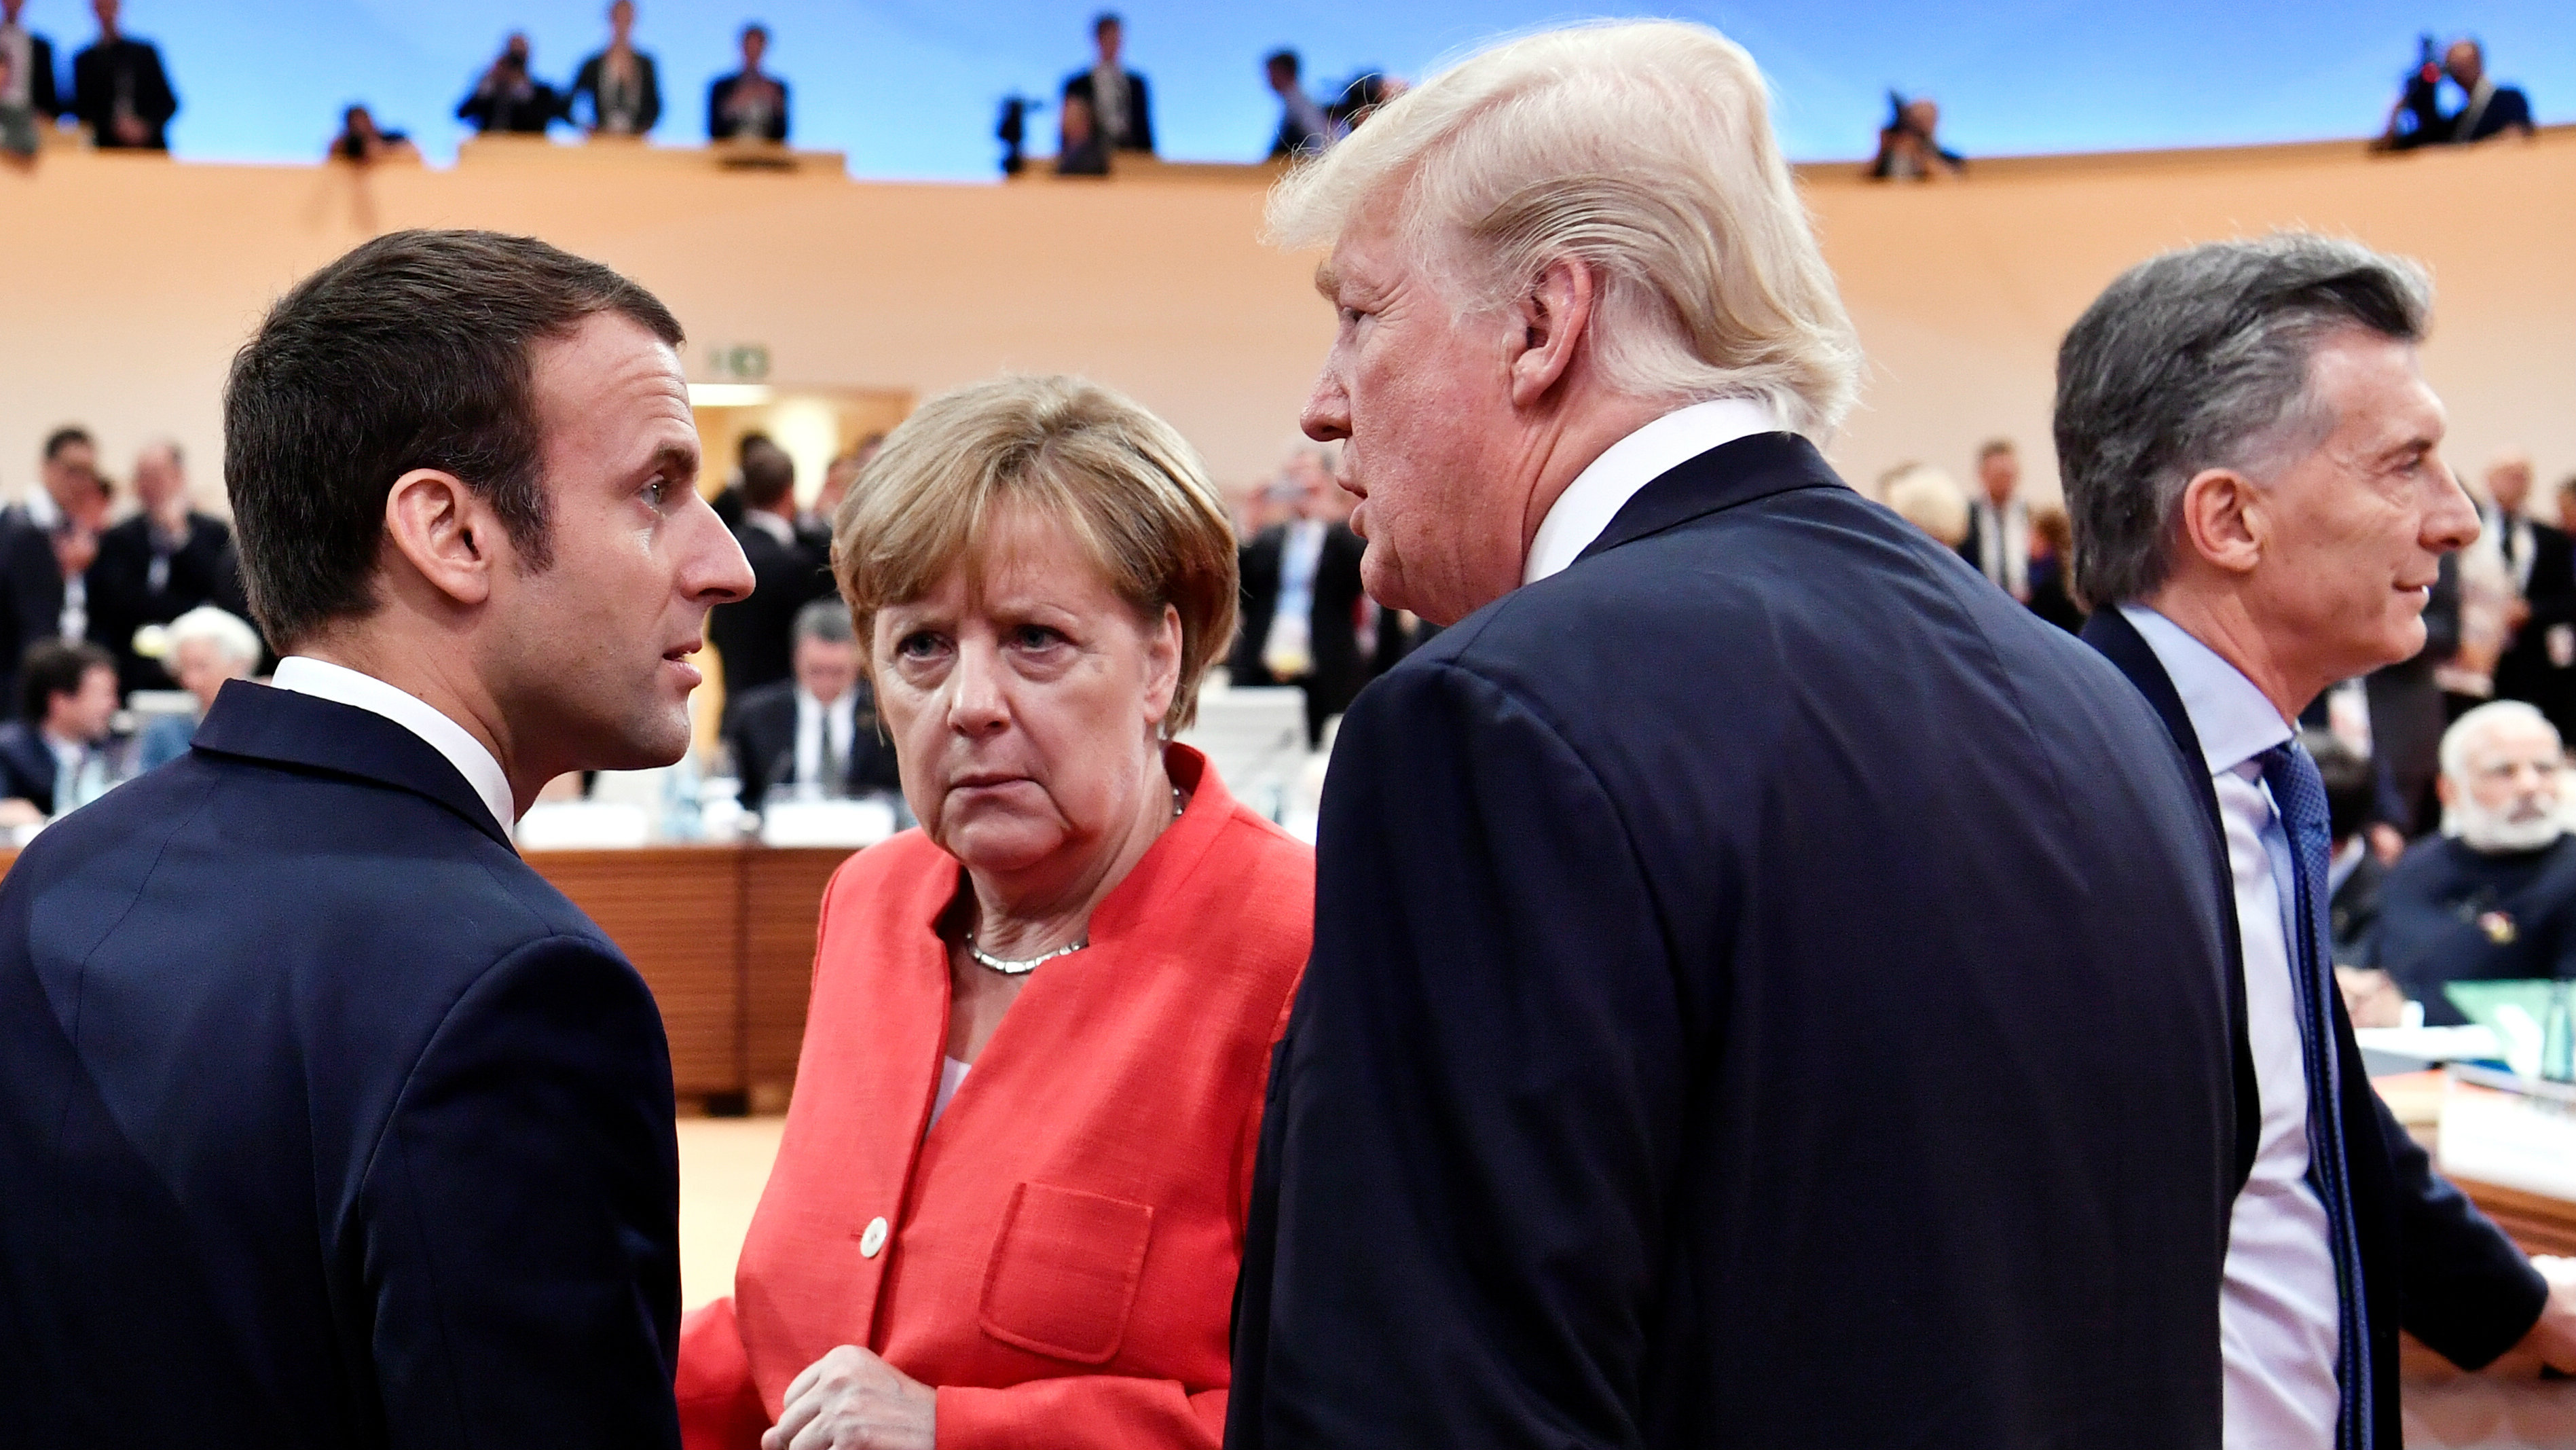 French President Emmanuel Macron, German Chancellor Angela Merkel and U.S. President Donald Trump confer s Argentinia's President Mauricio Macri walks past them at the start of the first working session of the G20 meeting in Hamburg, Germany, July 7, 2017.